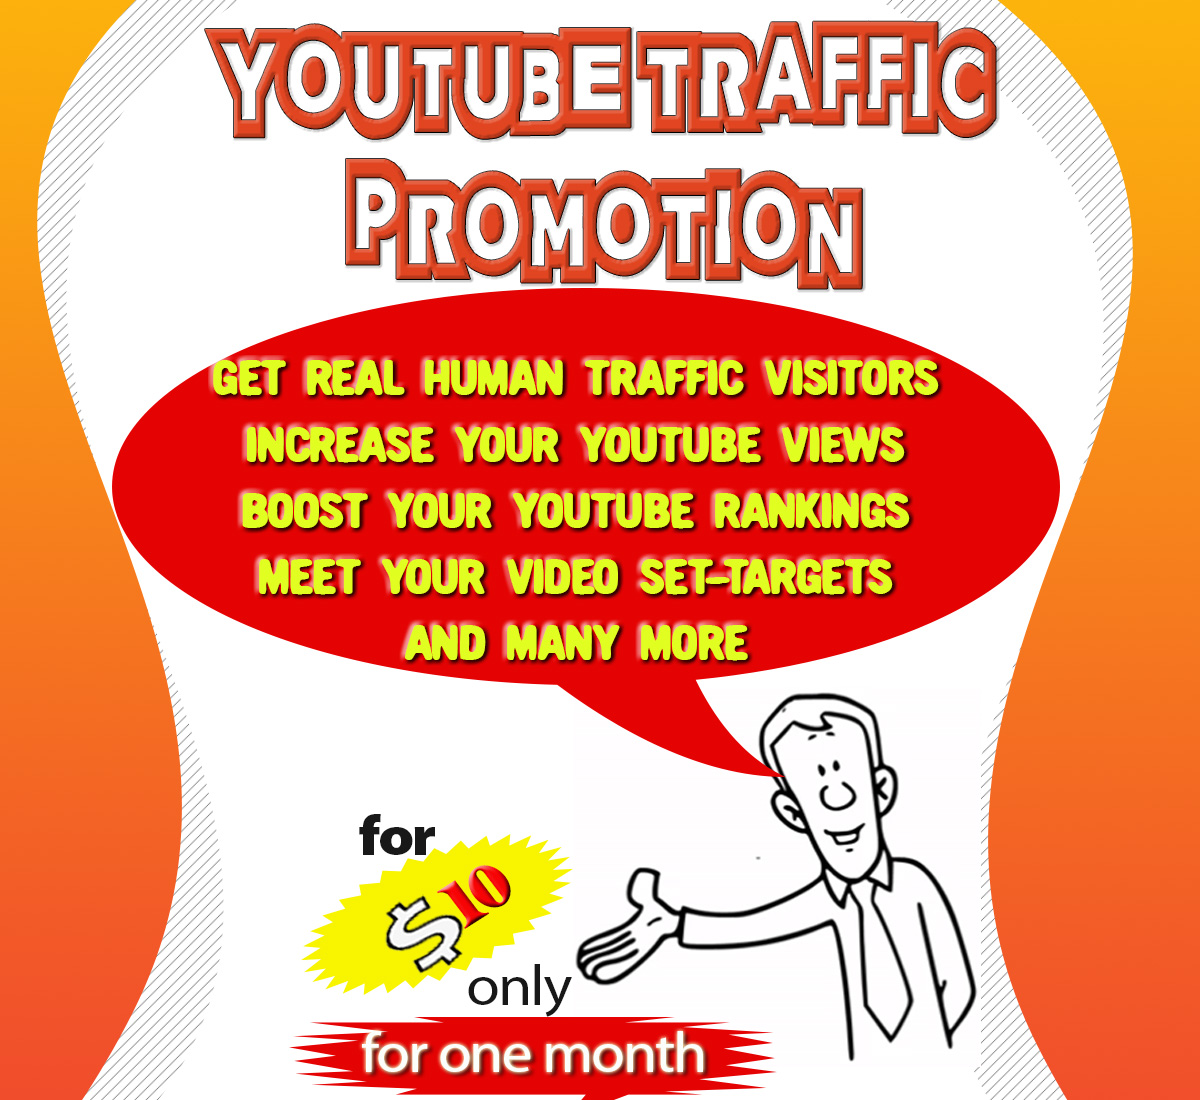 Drive Real Traffic Visitors to your Youtube Video for one month